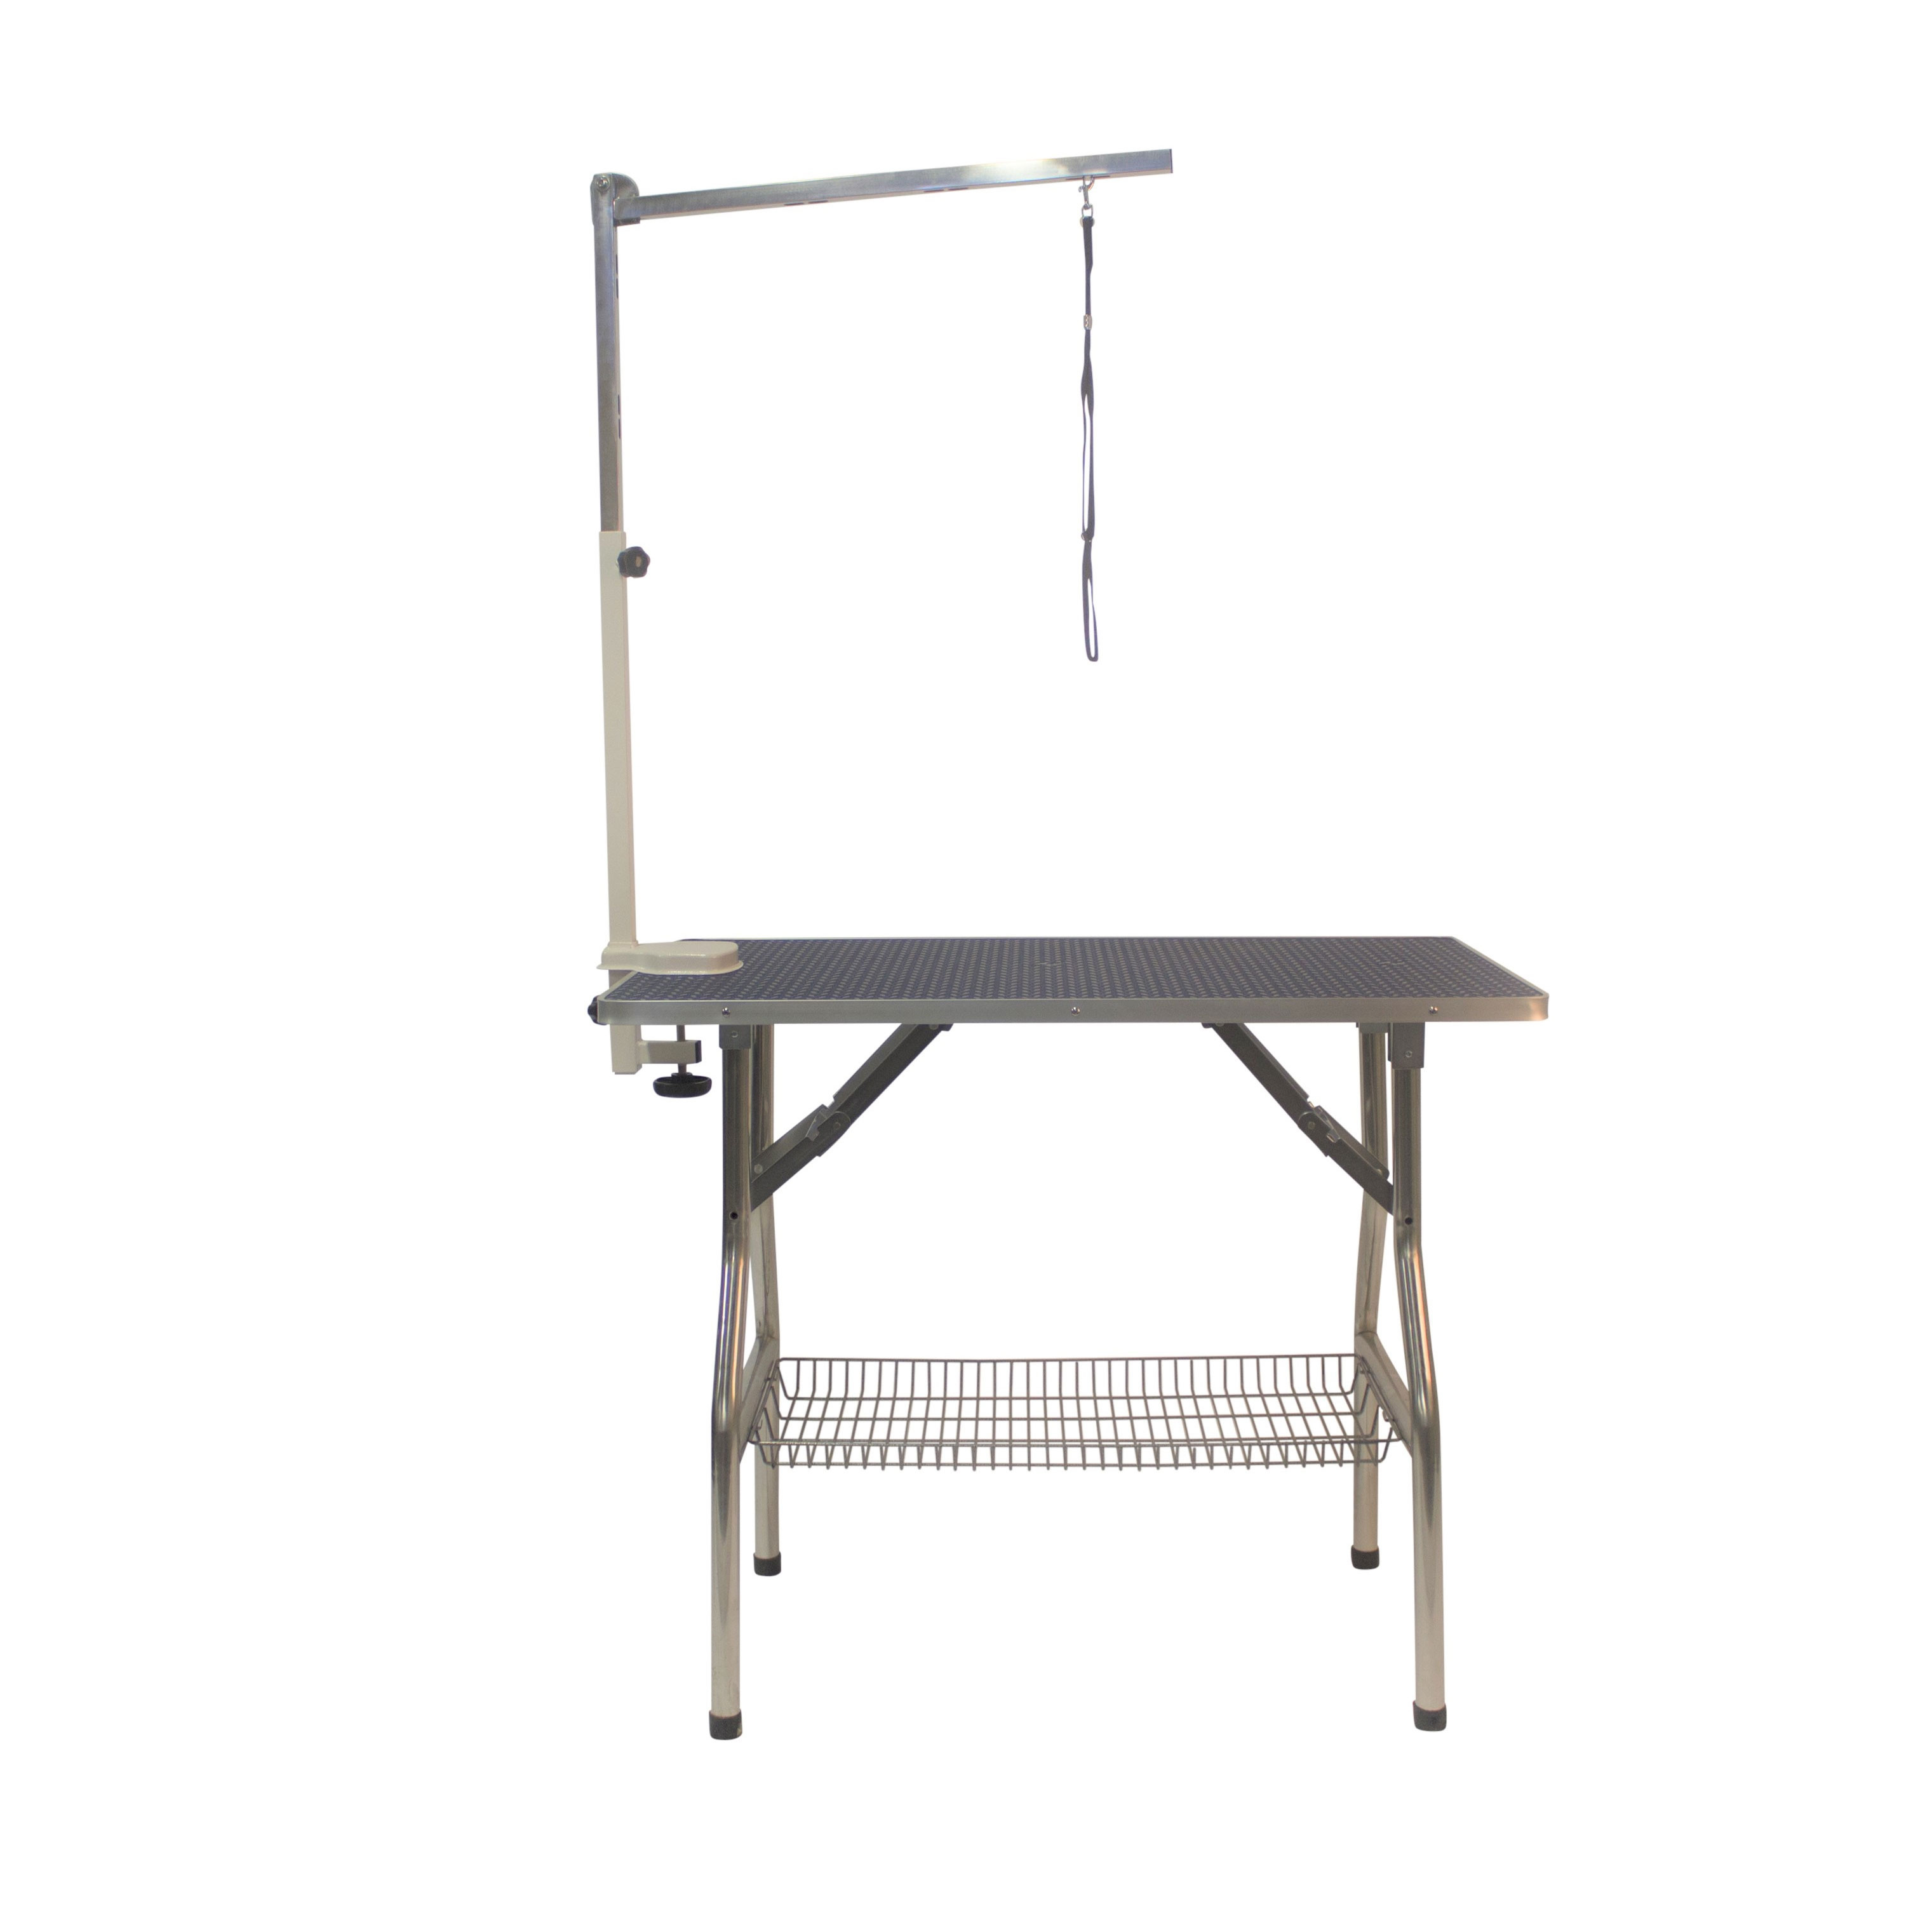 Tools 2 Groom Trimtafel hond (medium)